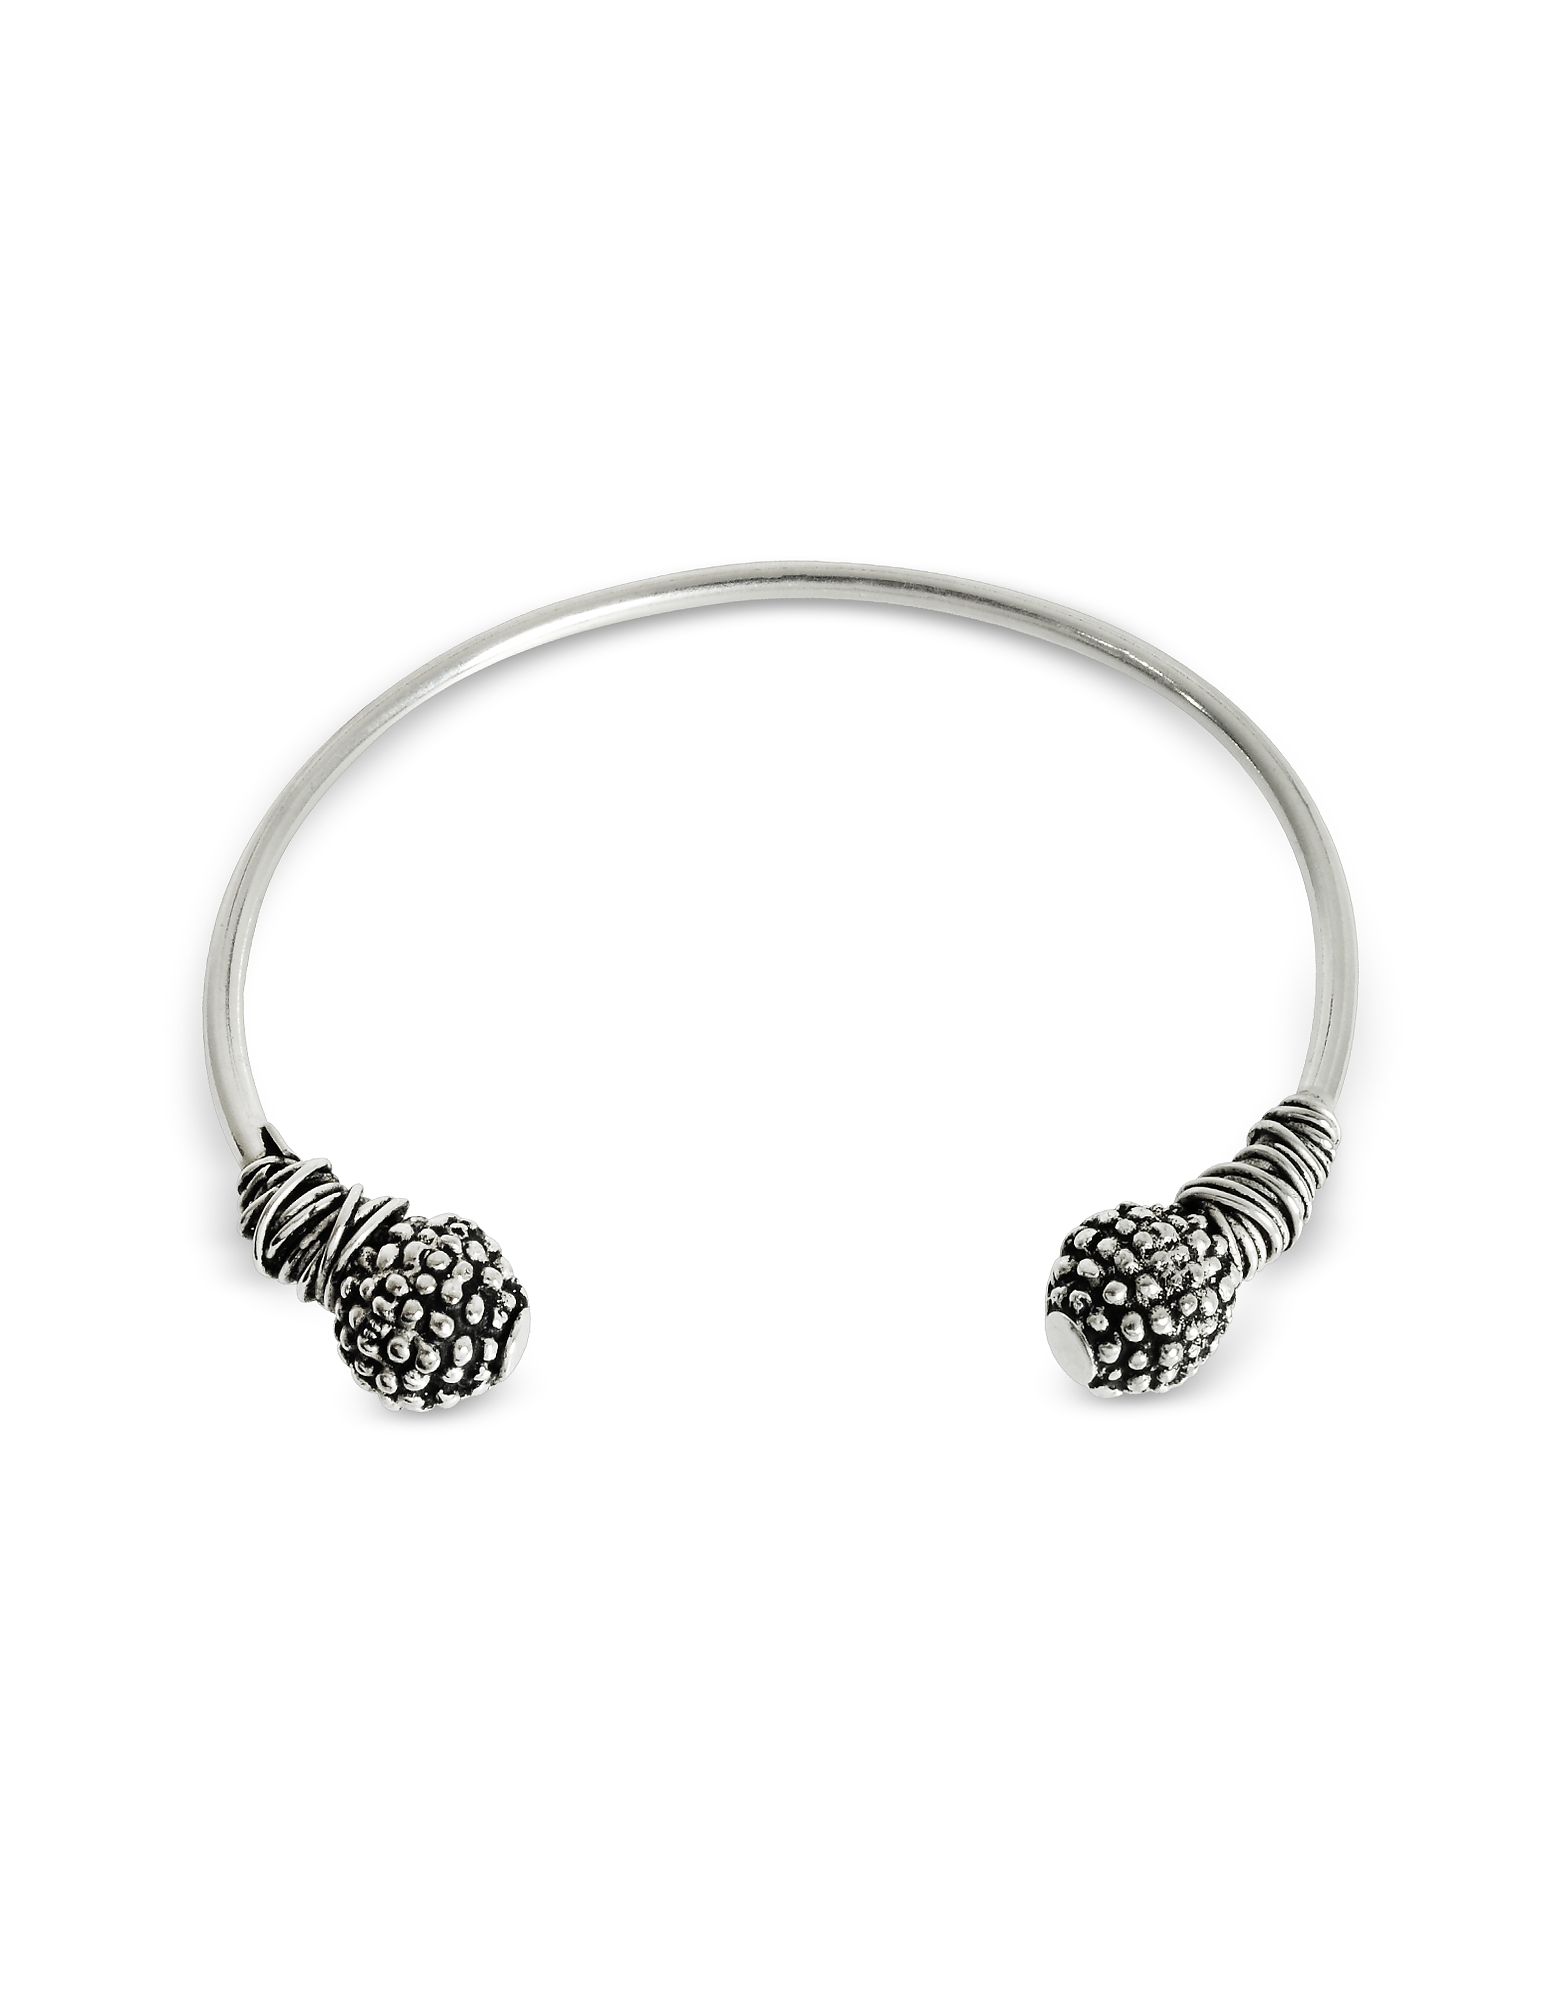 Etruscan Knot Silver Bangle